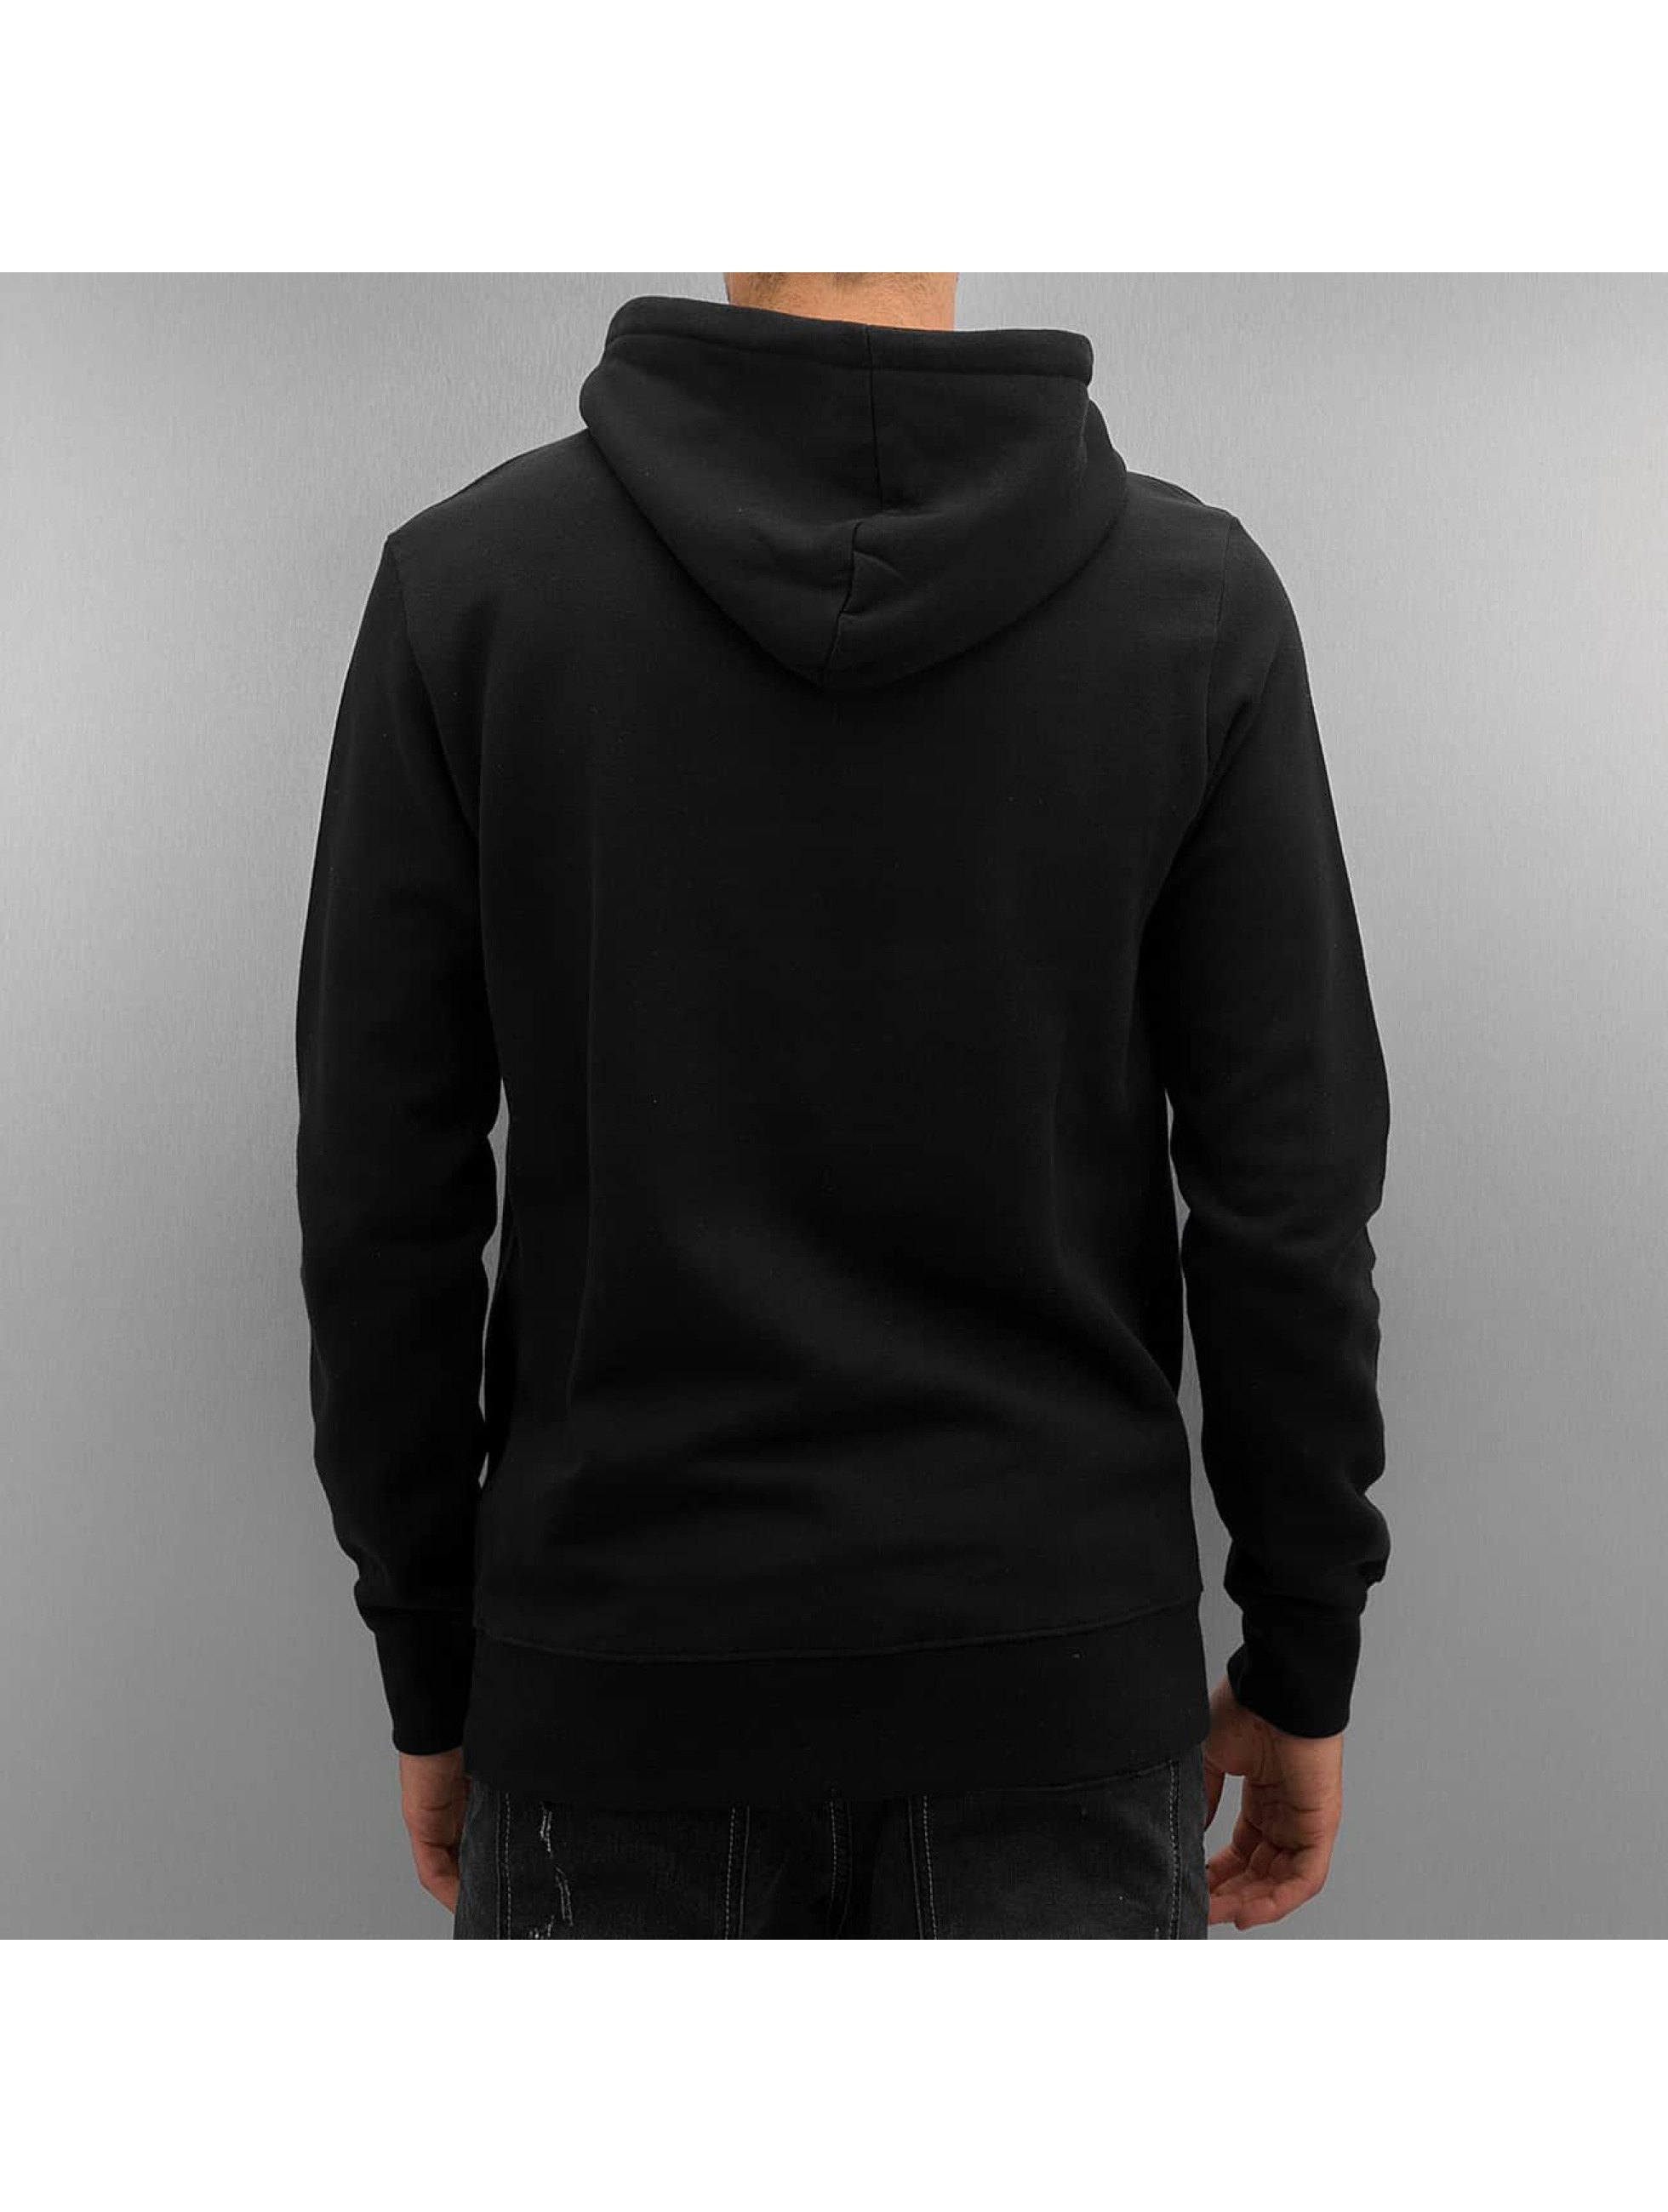 The Dudes Hoodie Meat black